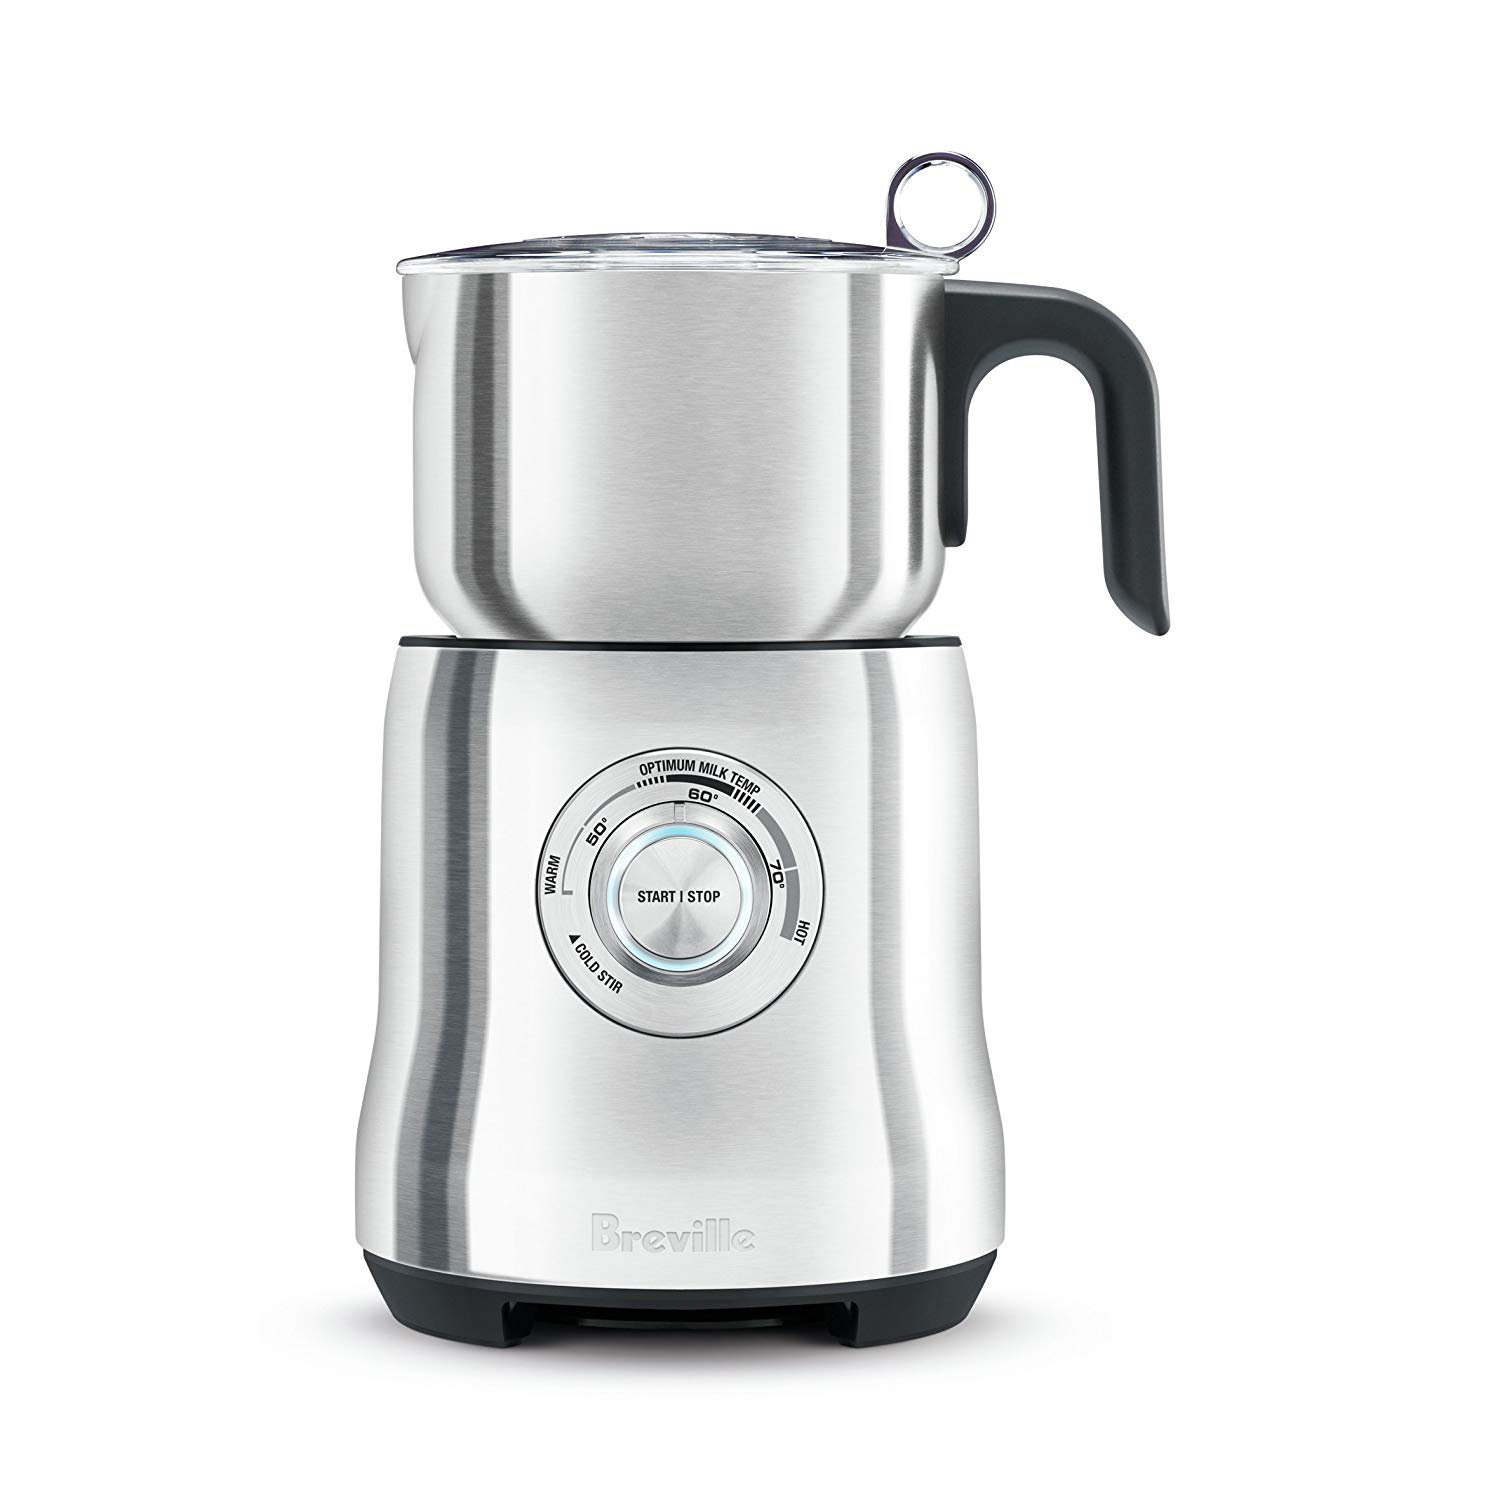 Breville Milk Cafe Stainless Steel Milk Frother